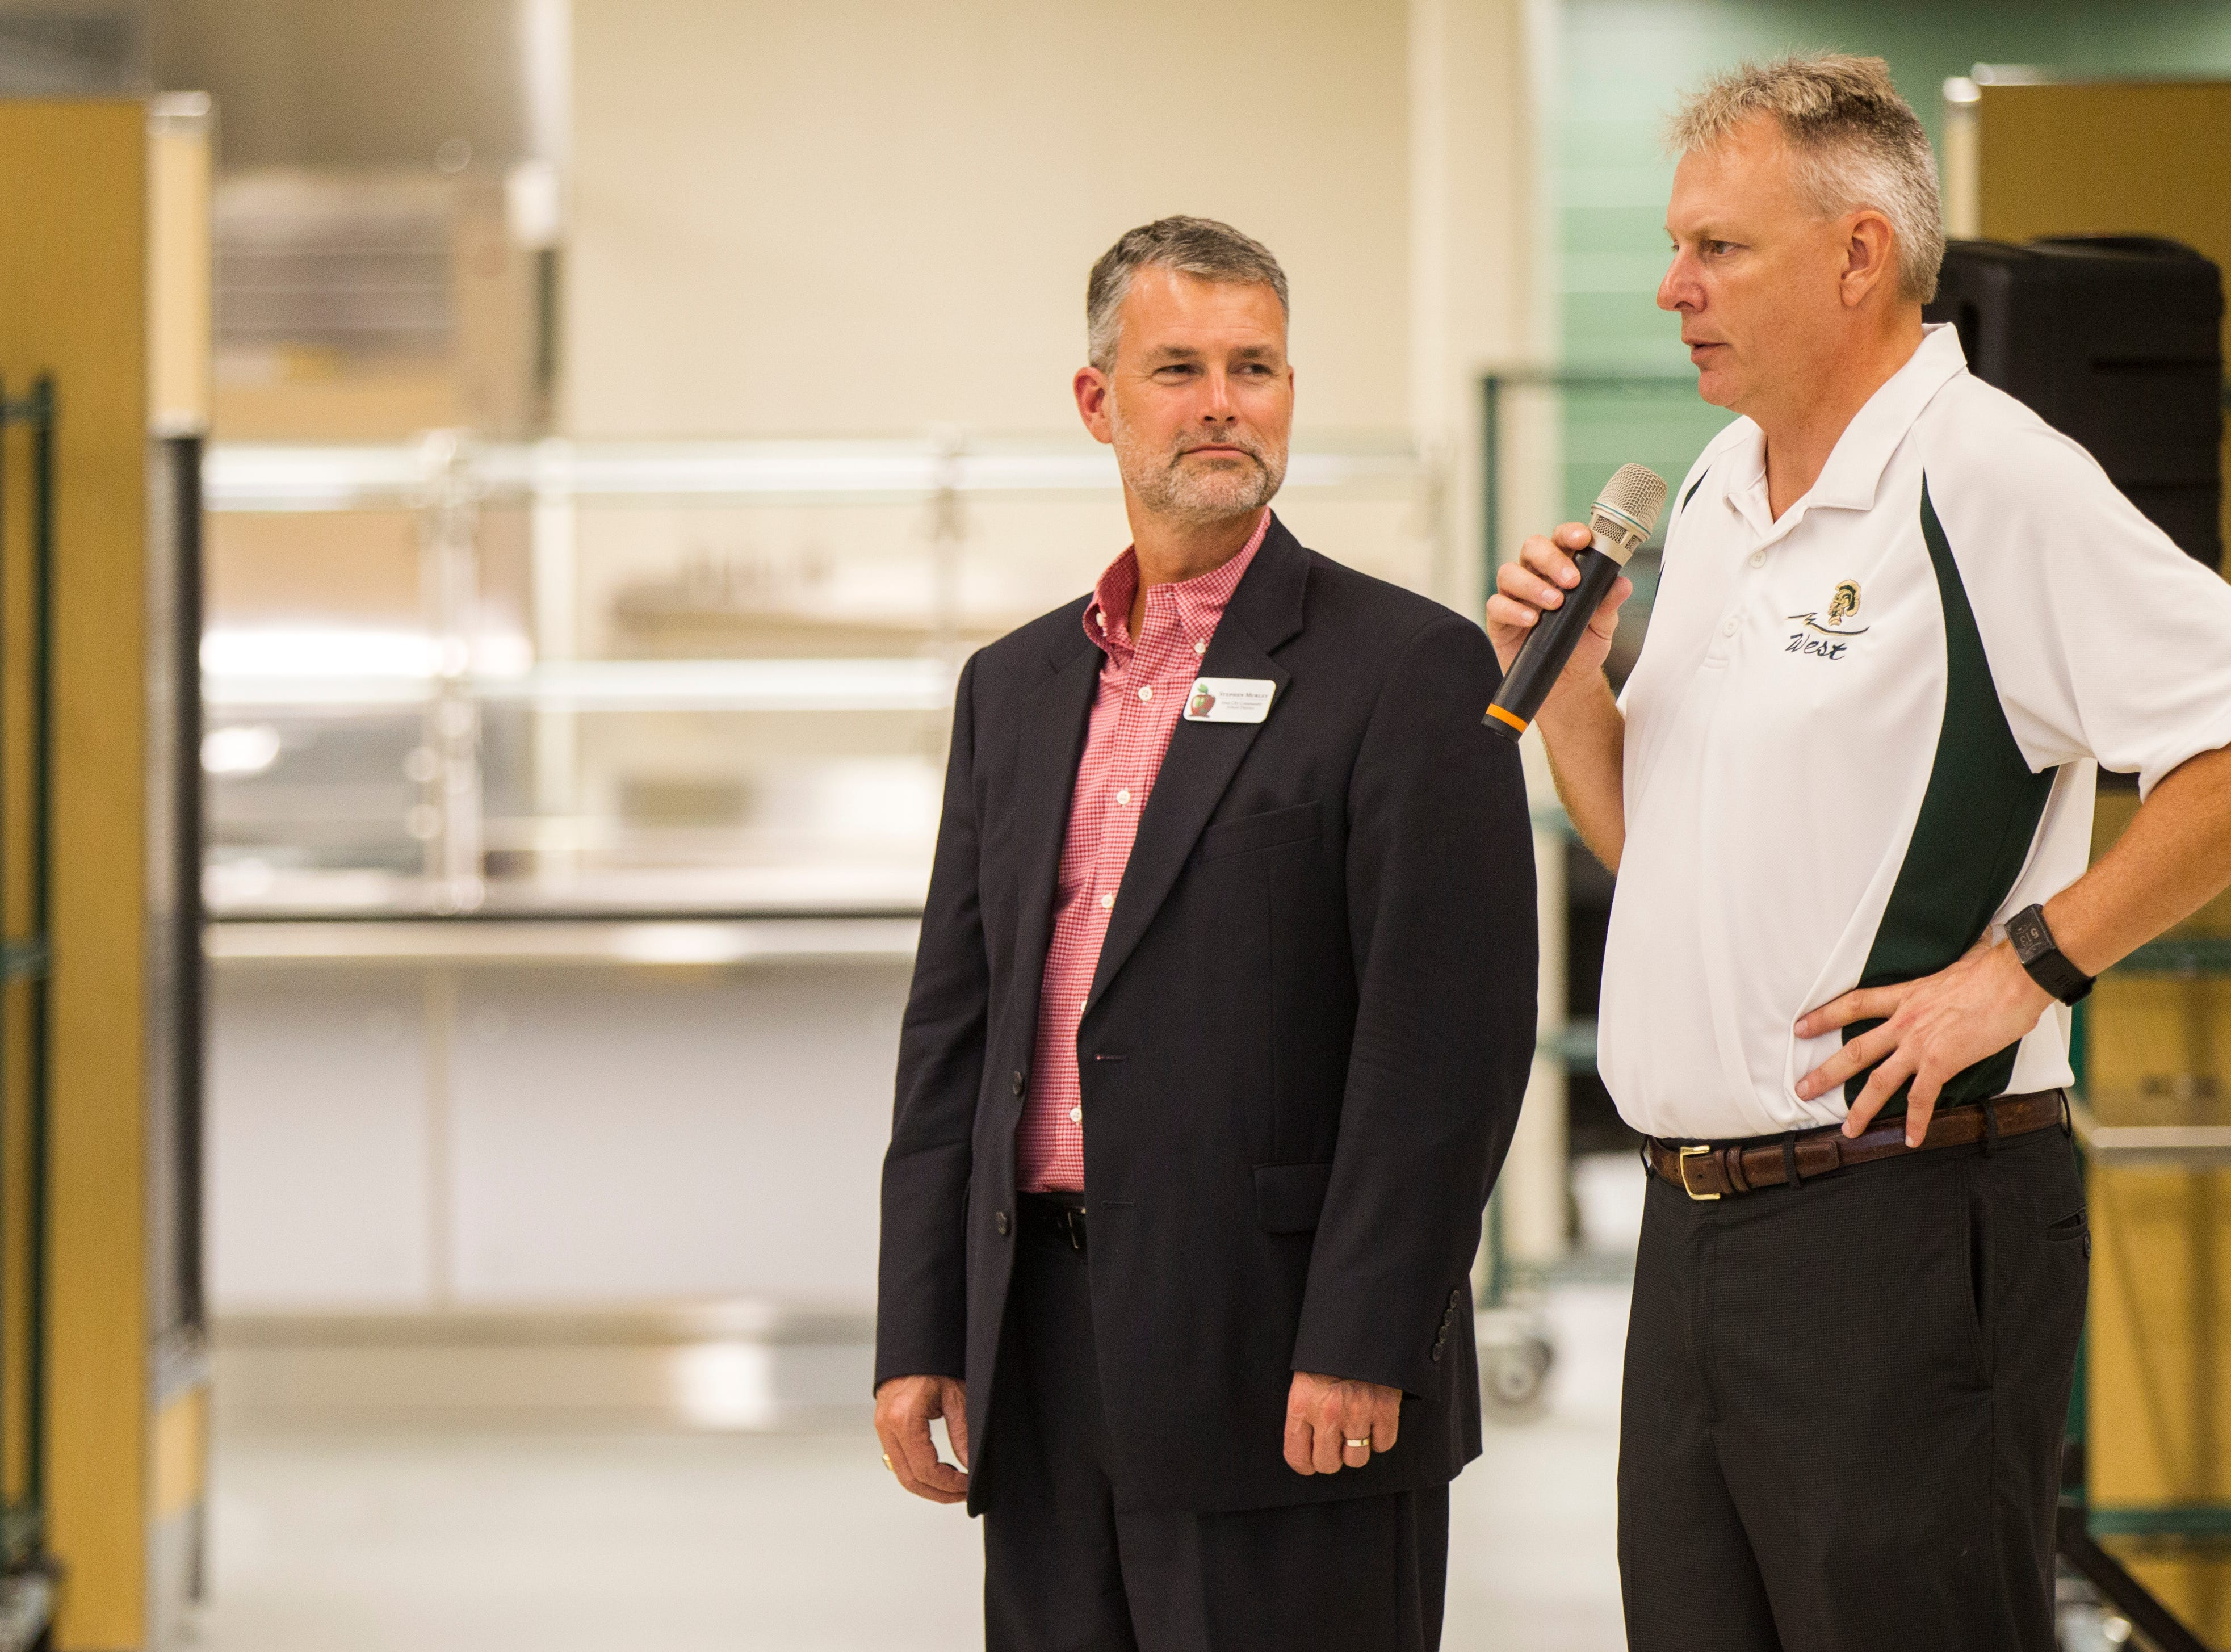 Gregg Shoultz, West High principal, (right) introduces Stephen Murley, Iowa City Community School District superintendent, during a tour of a recently completed addition to facilities on Wednesday, Aug. 15, 2018, at West High School in Iowa City. The addition was the first phase of renovations set to take place for the building that opened in 1968.